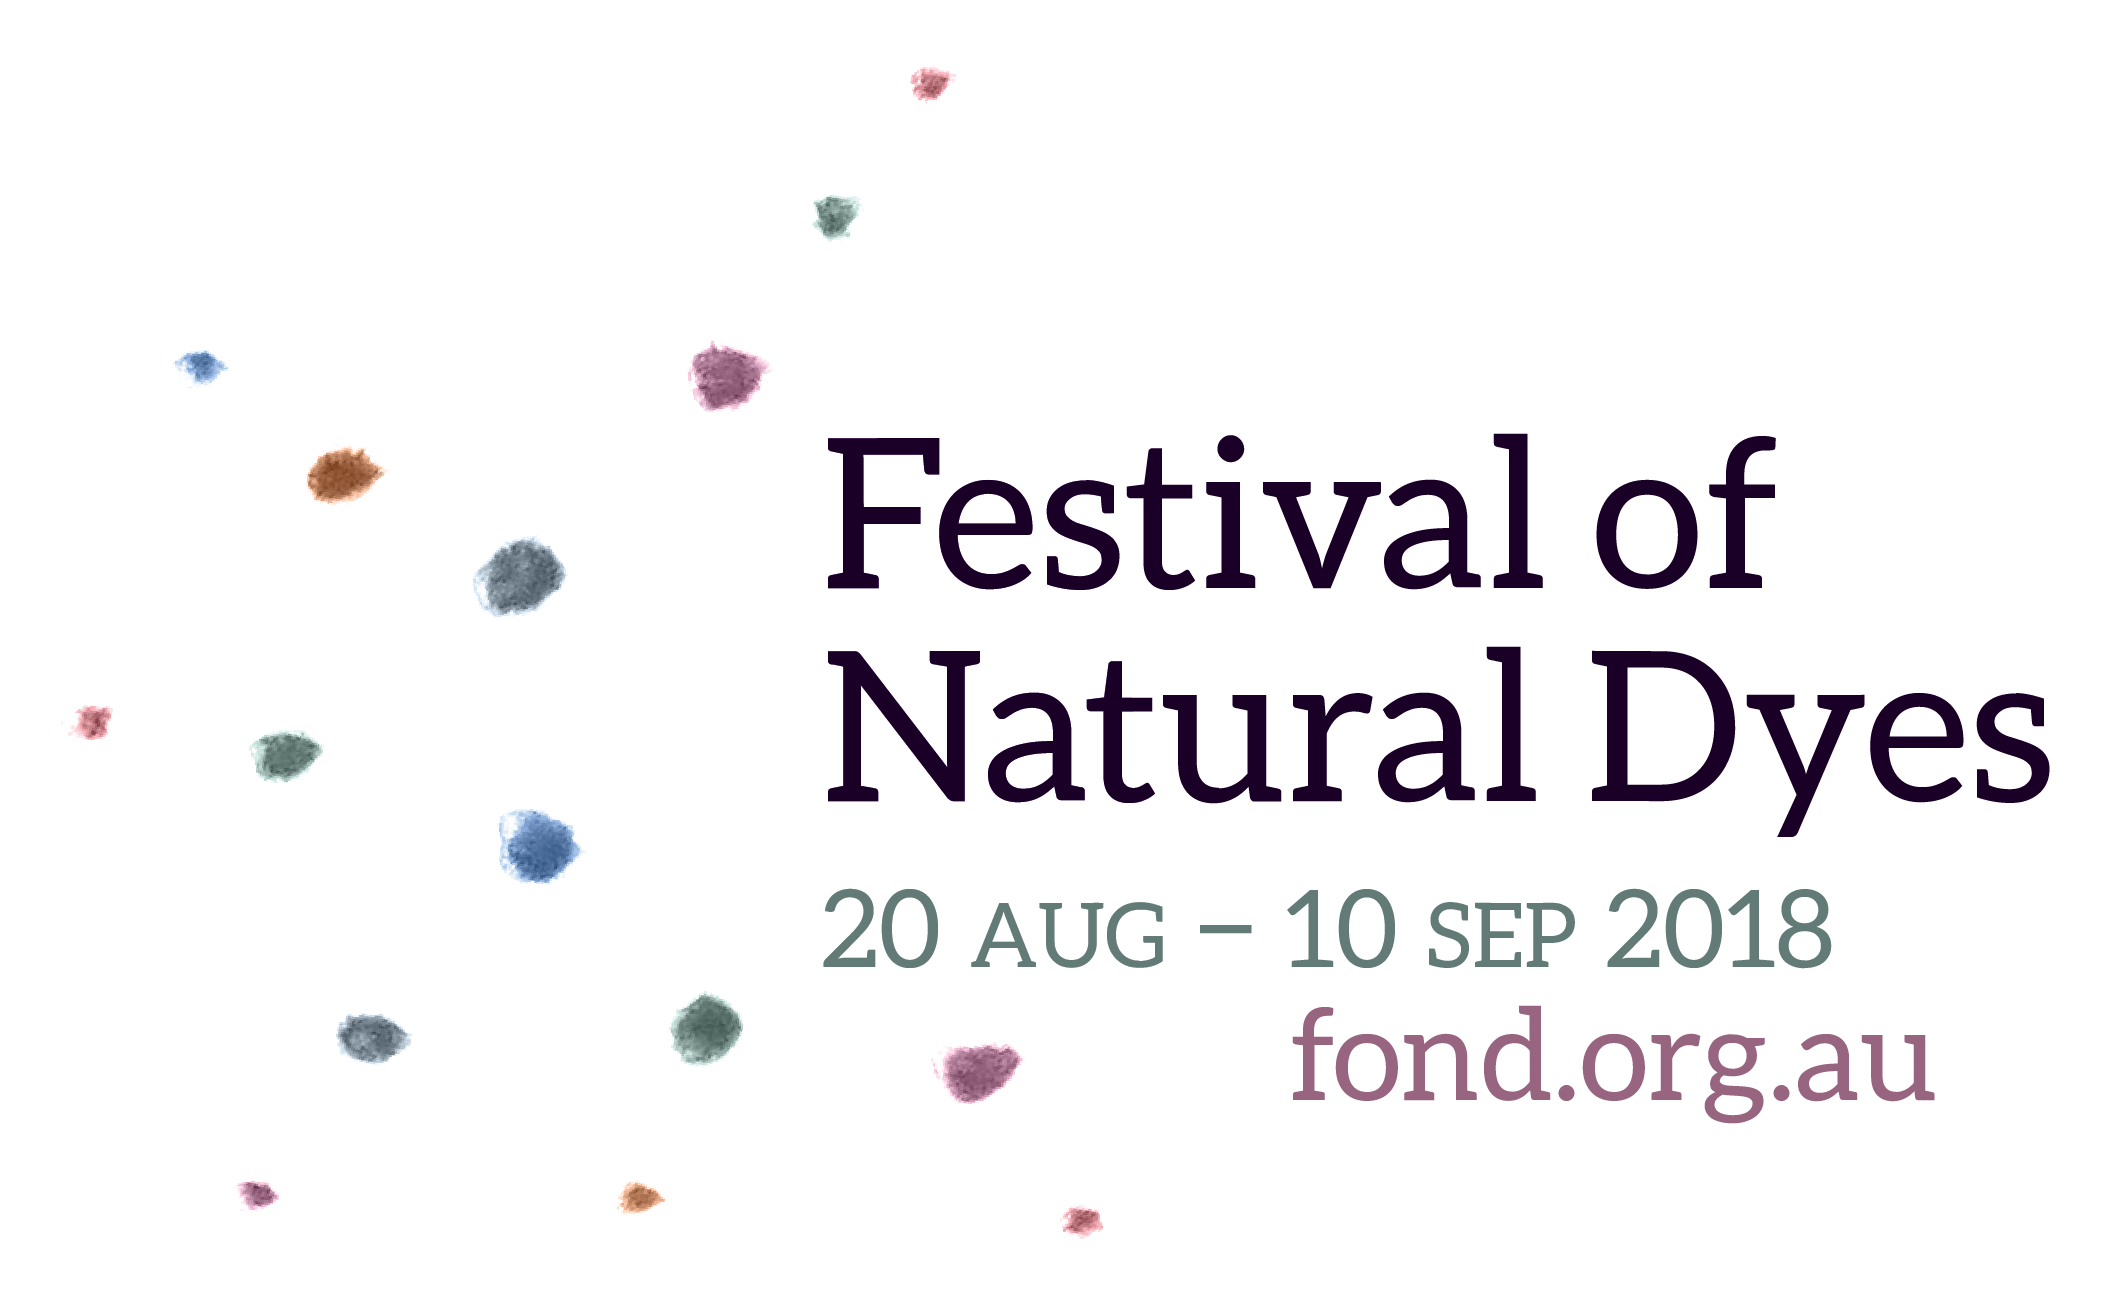 Festival of Natural Dyes